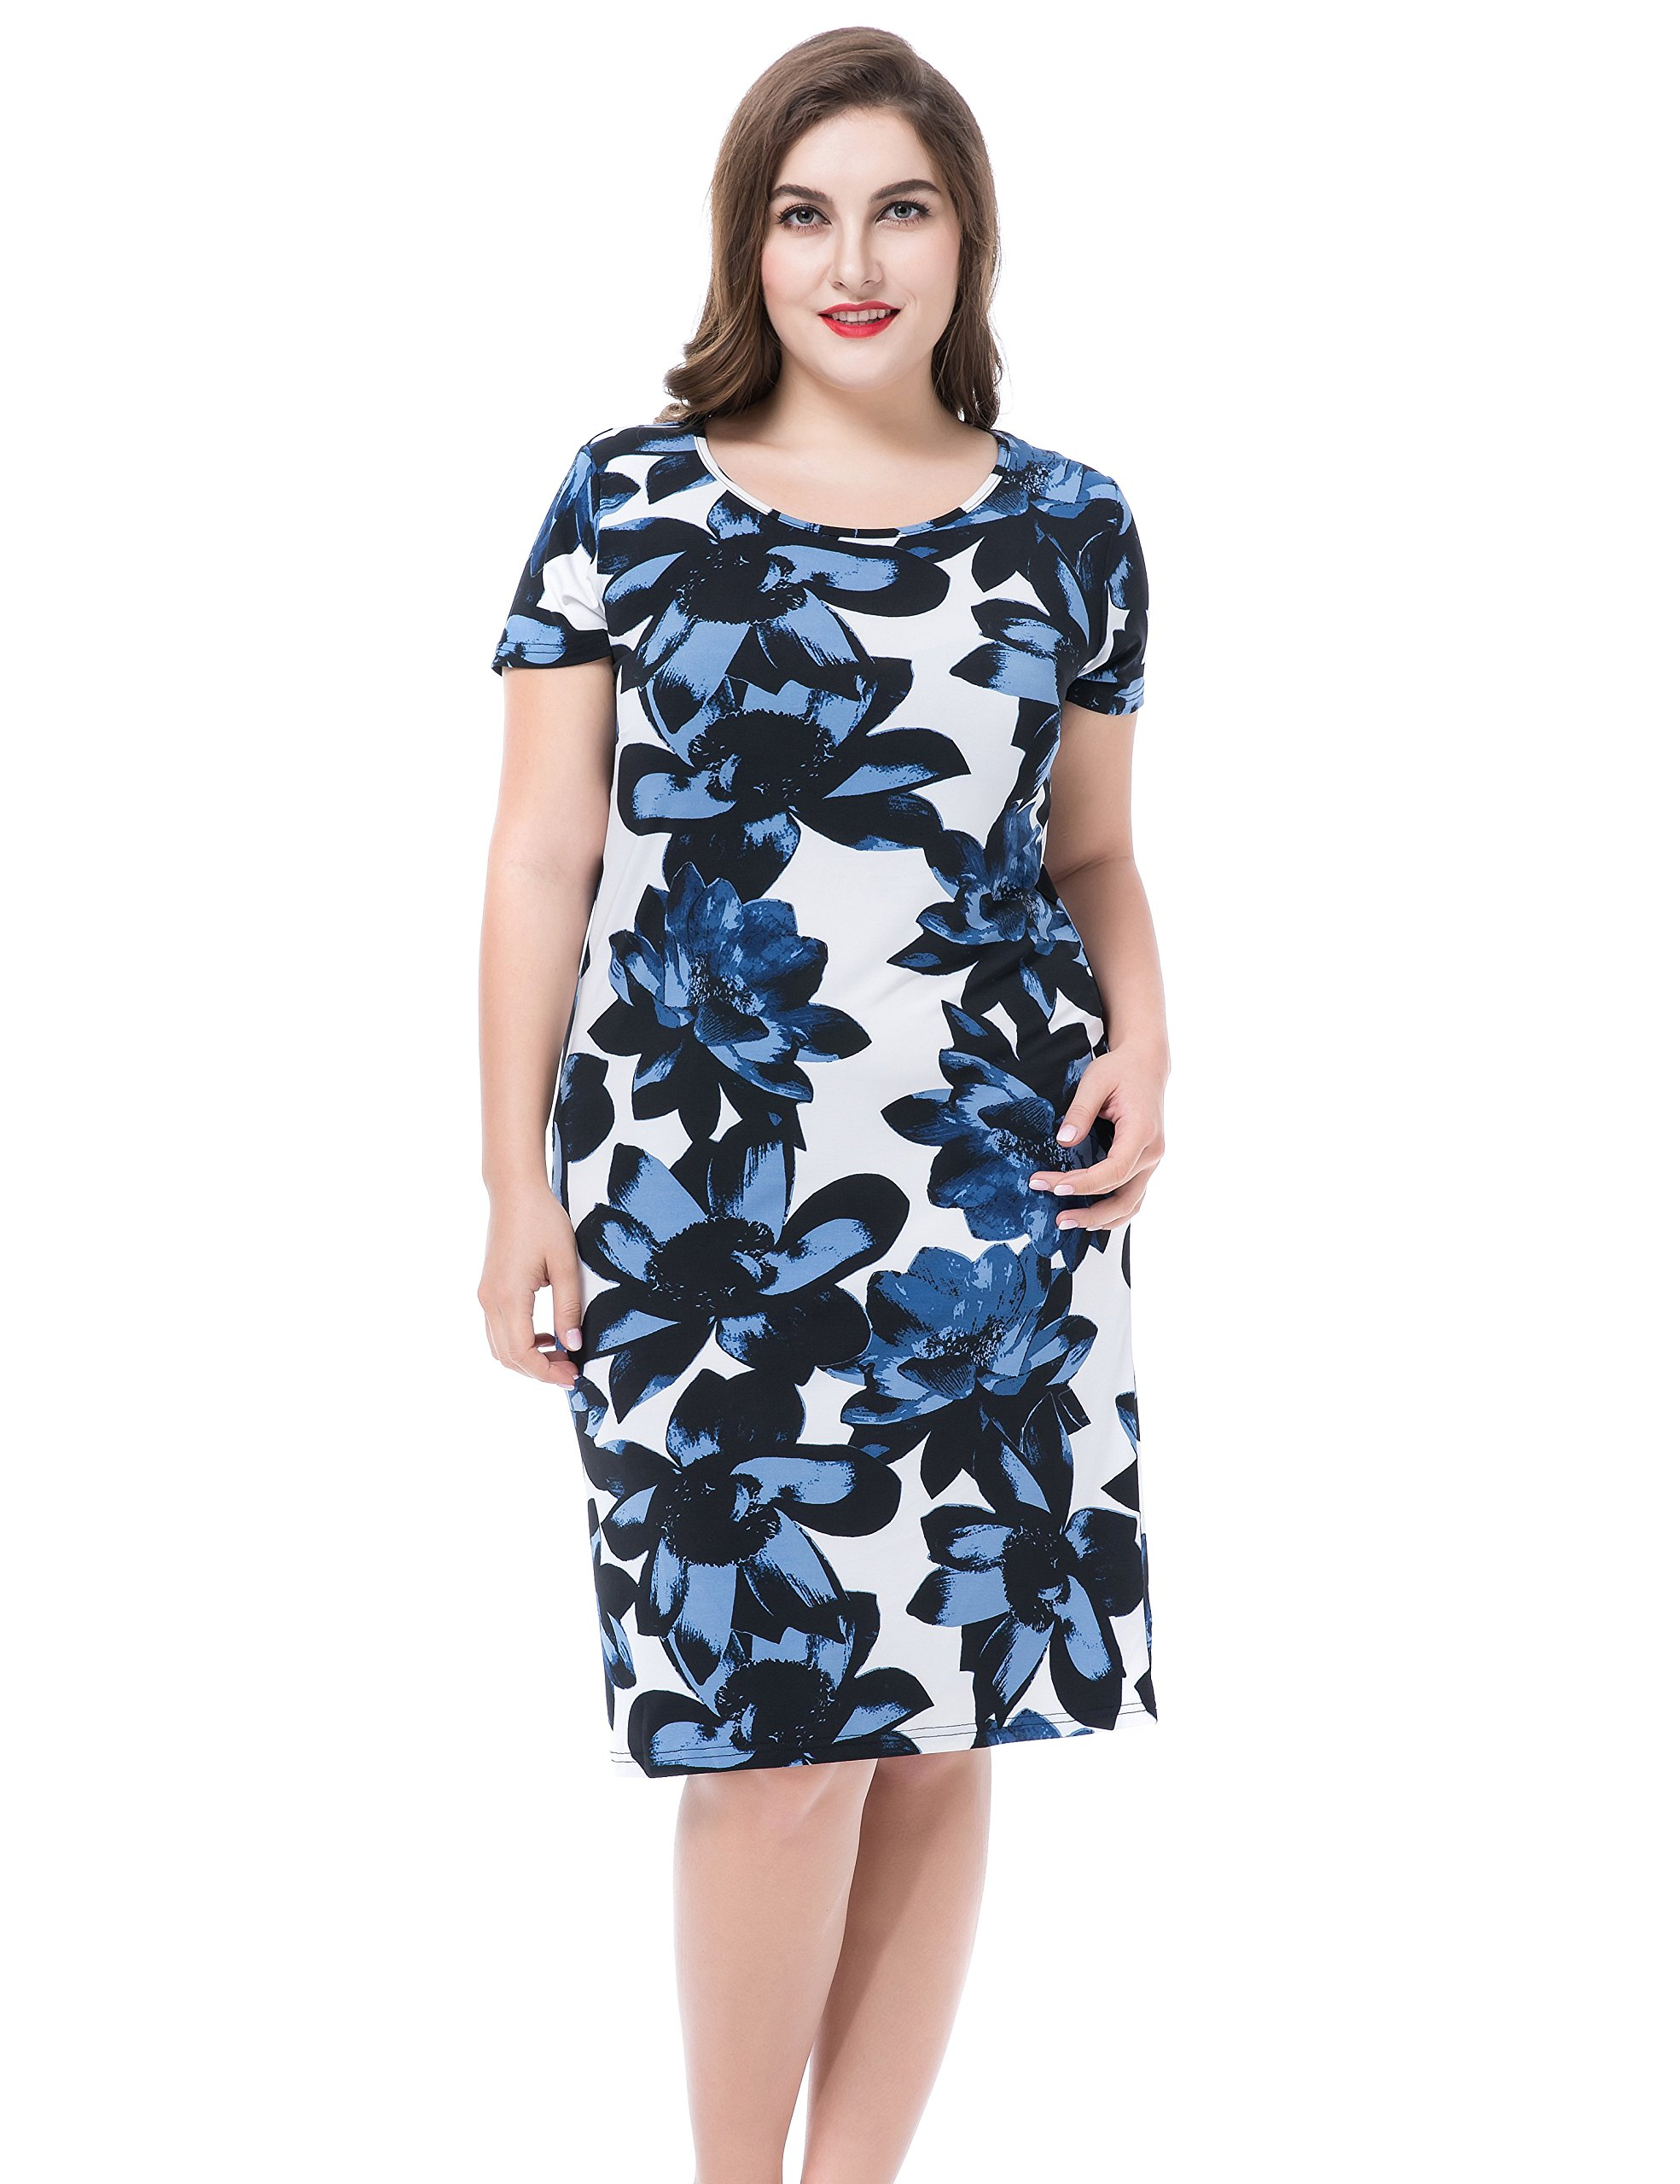 Available at Amazon: Chicwe Women's Plus Size Floral Printed Casual Dress - Round Neck Short Sleeves Knee Length